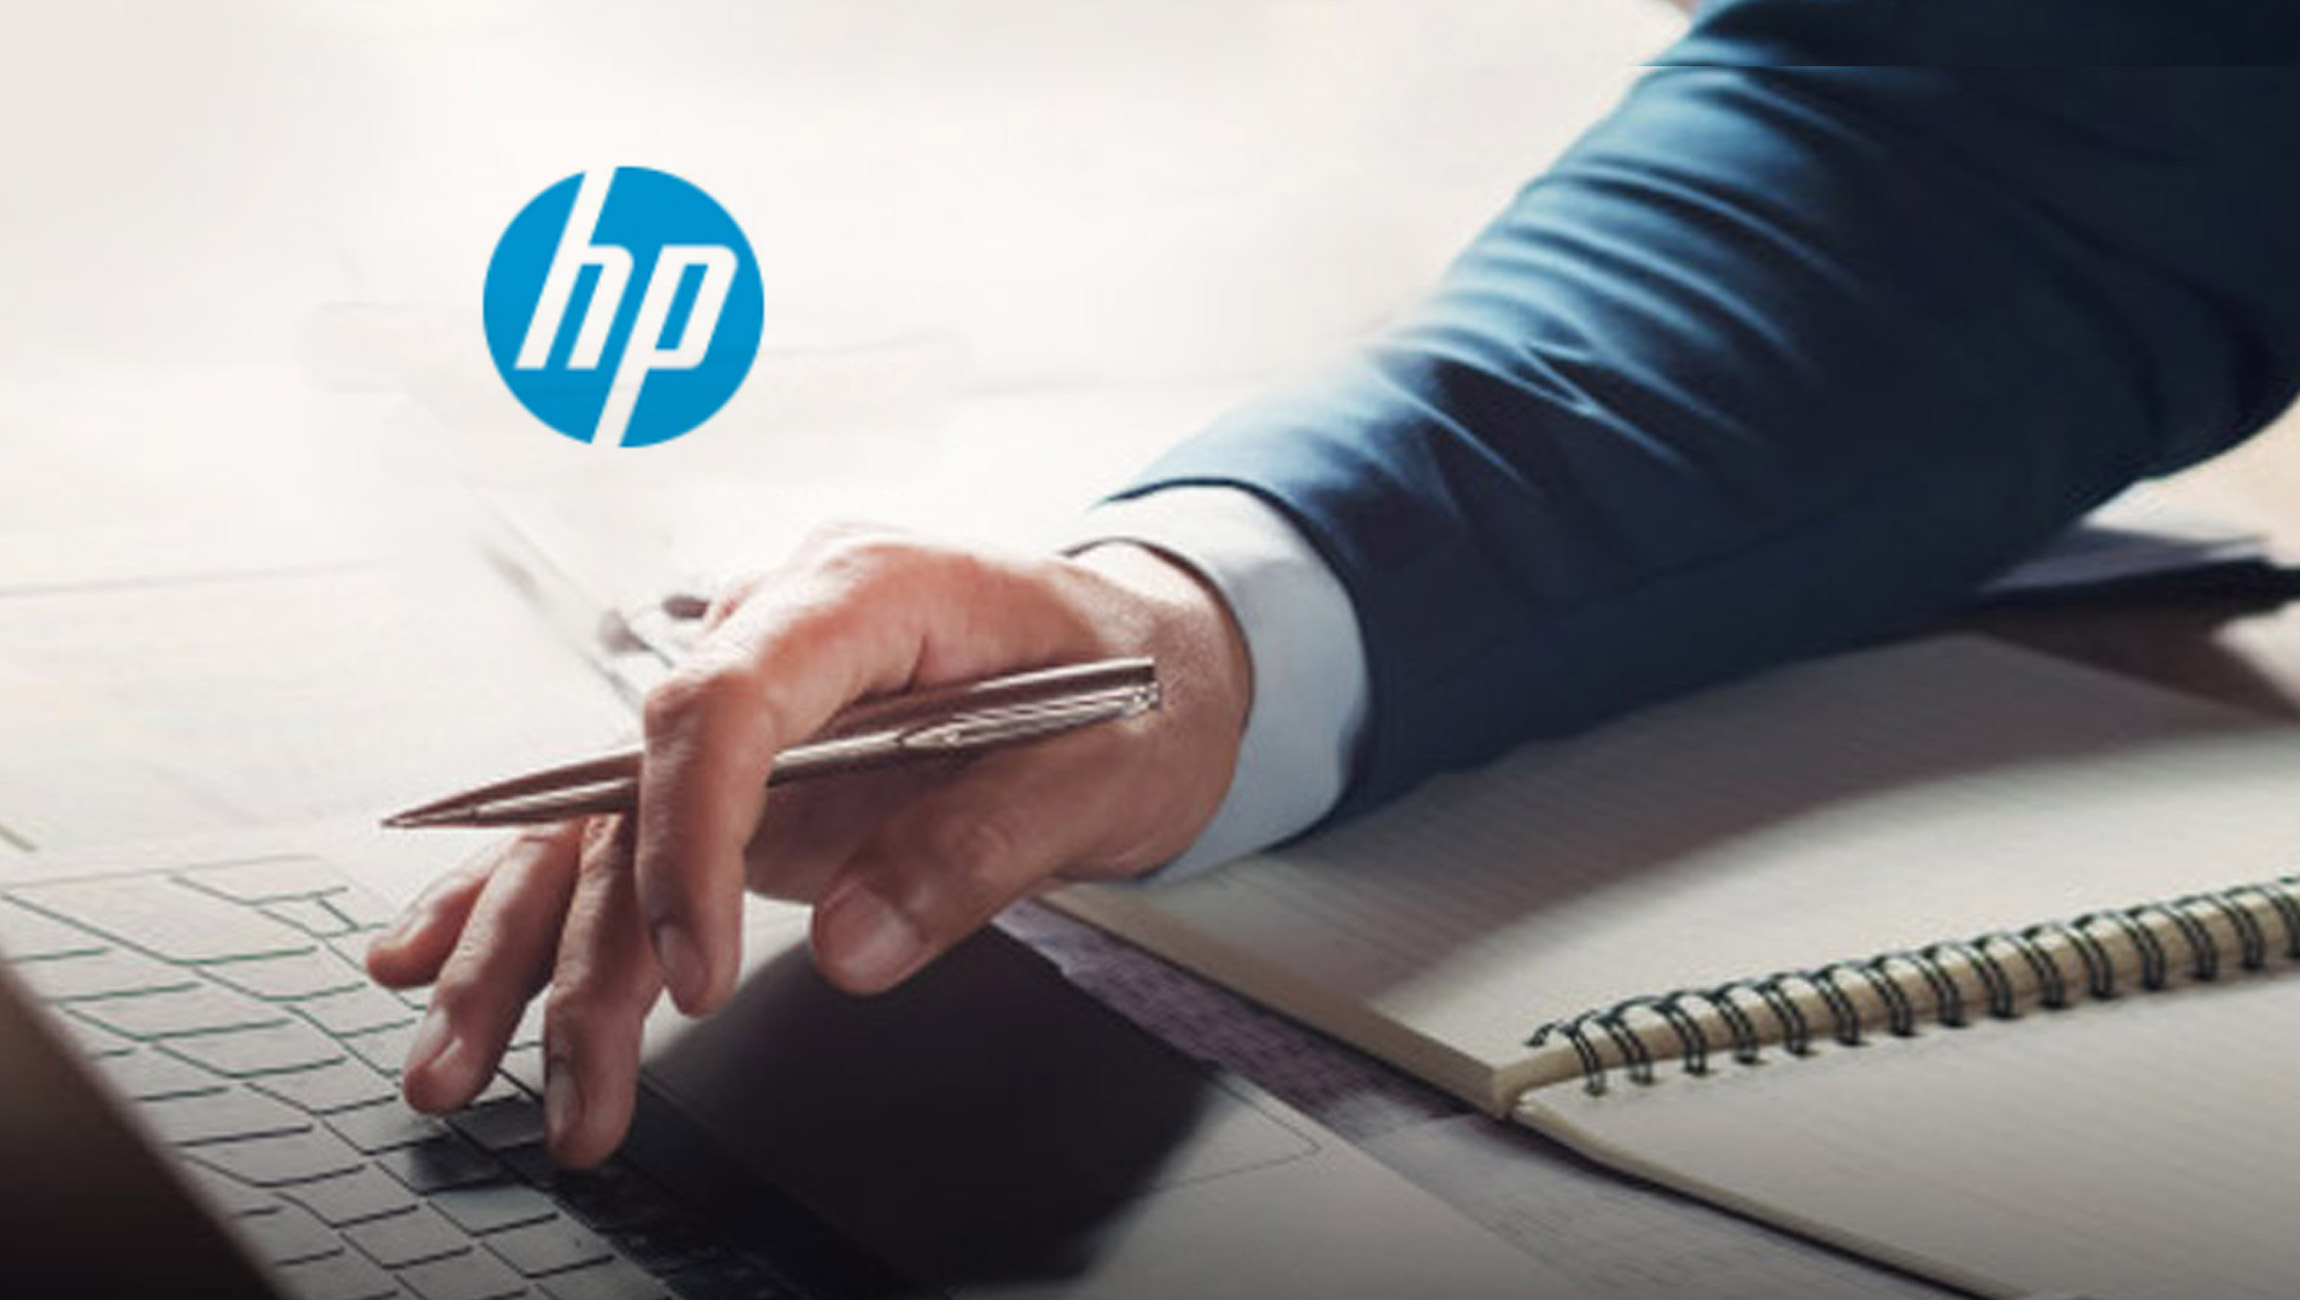 HP Inc. Shares Ambitious 2030 Goals to Drive a More Diverse, Equitable and Inclusive Tech Industry 1